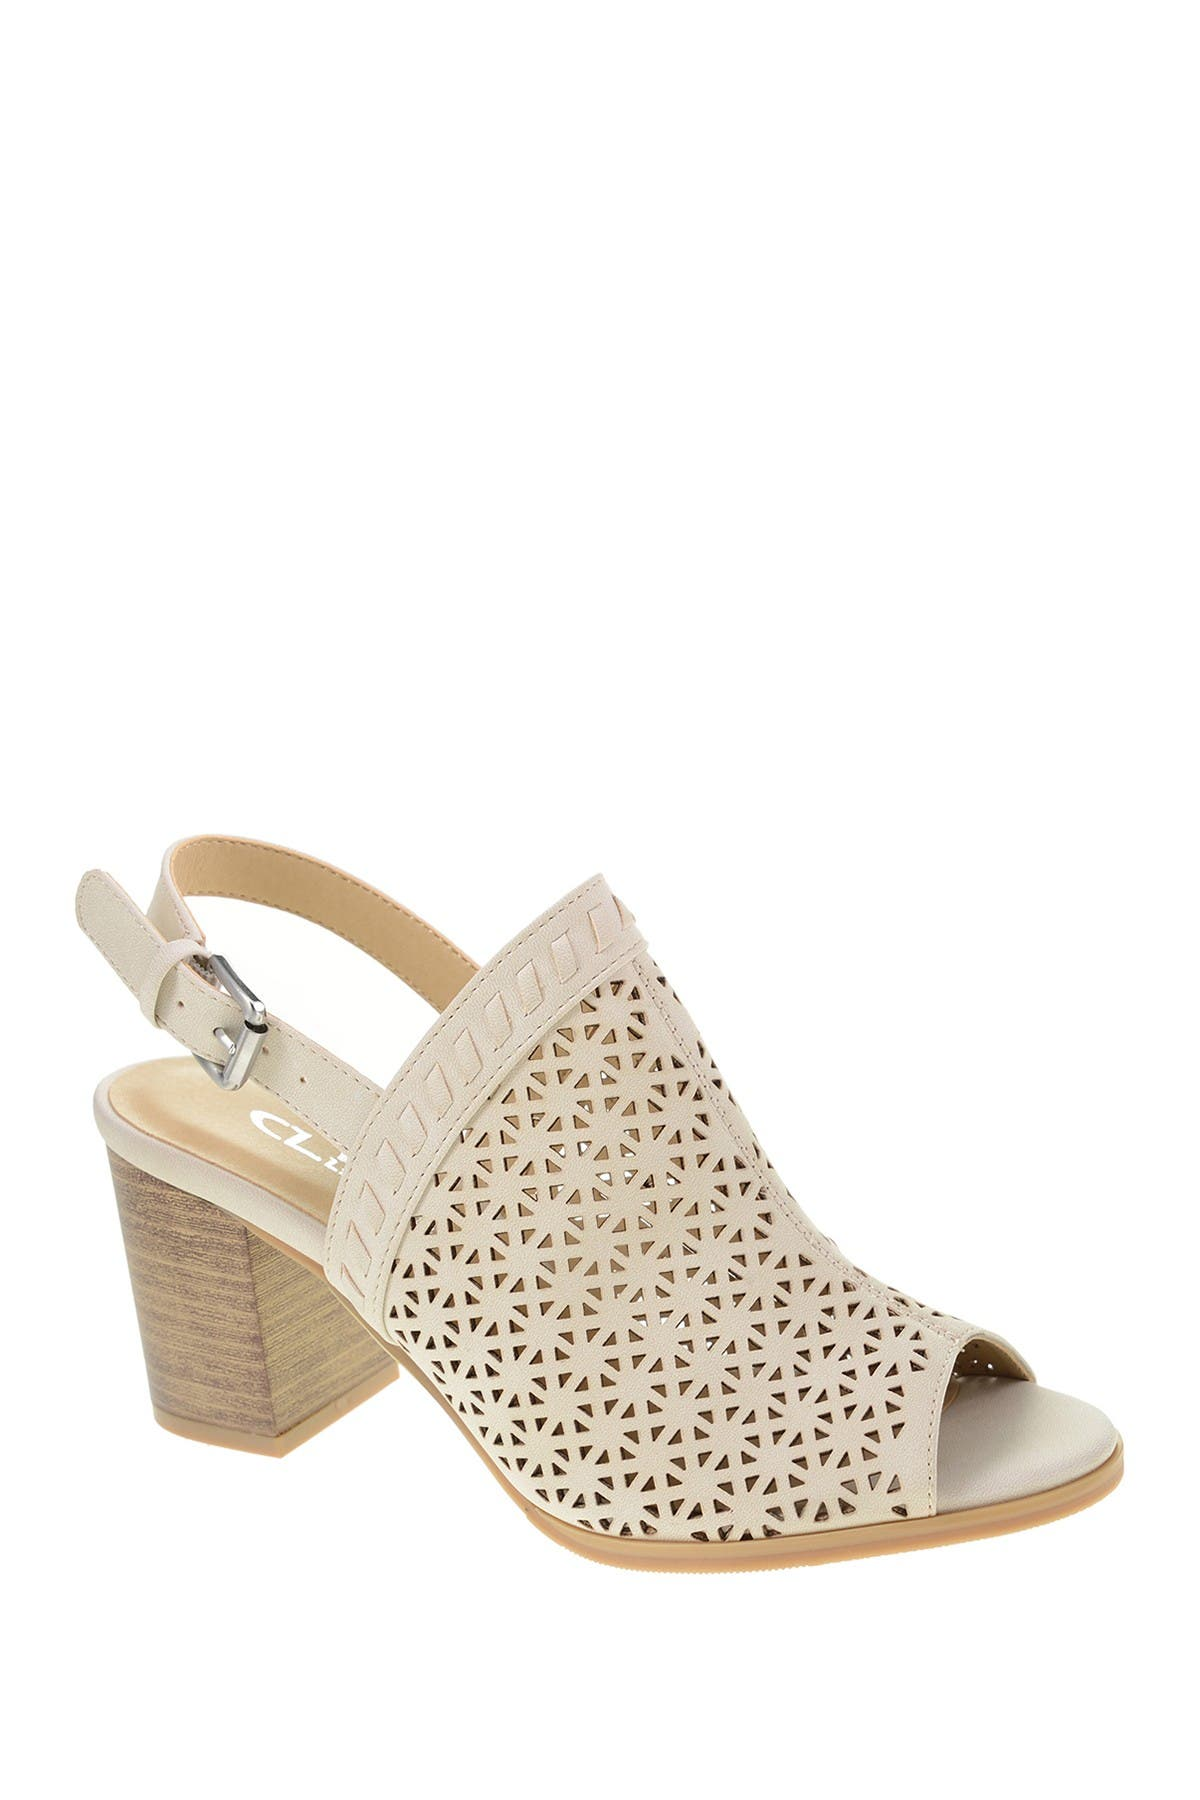 Image of CL by Laundry Jewelled Lasercut Slingback Sandal